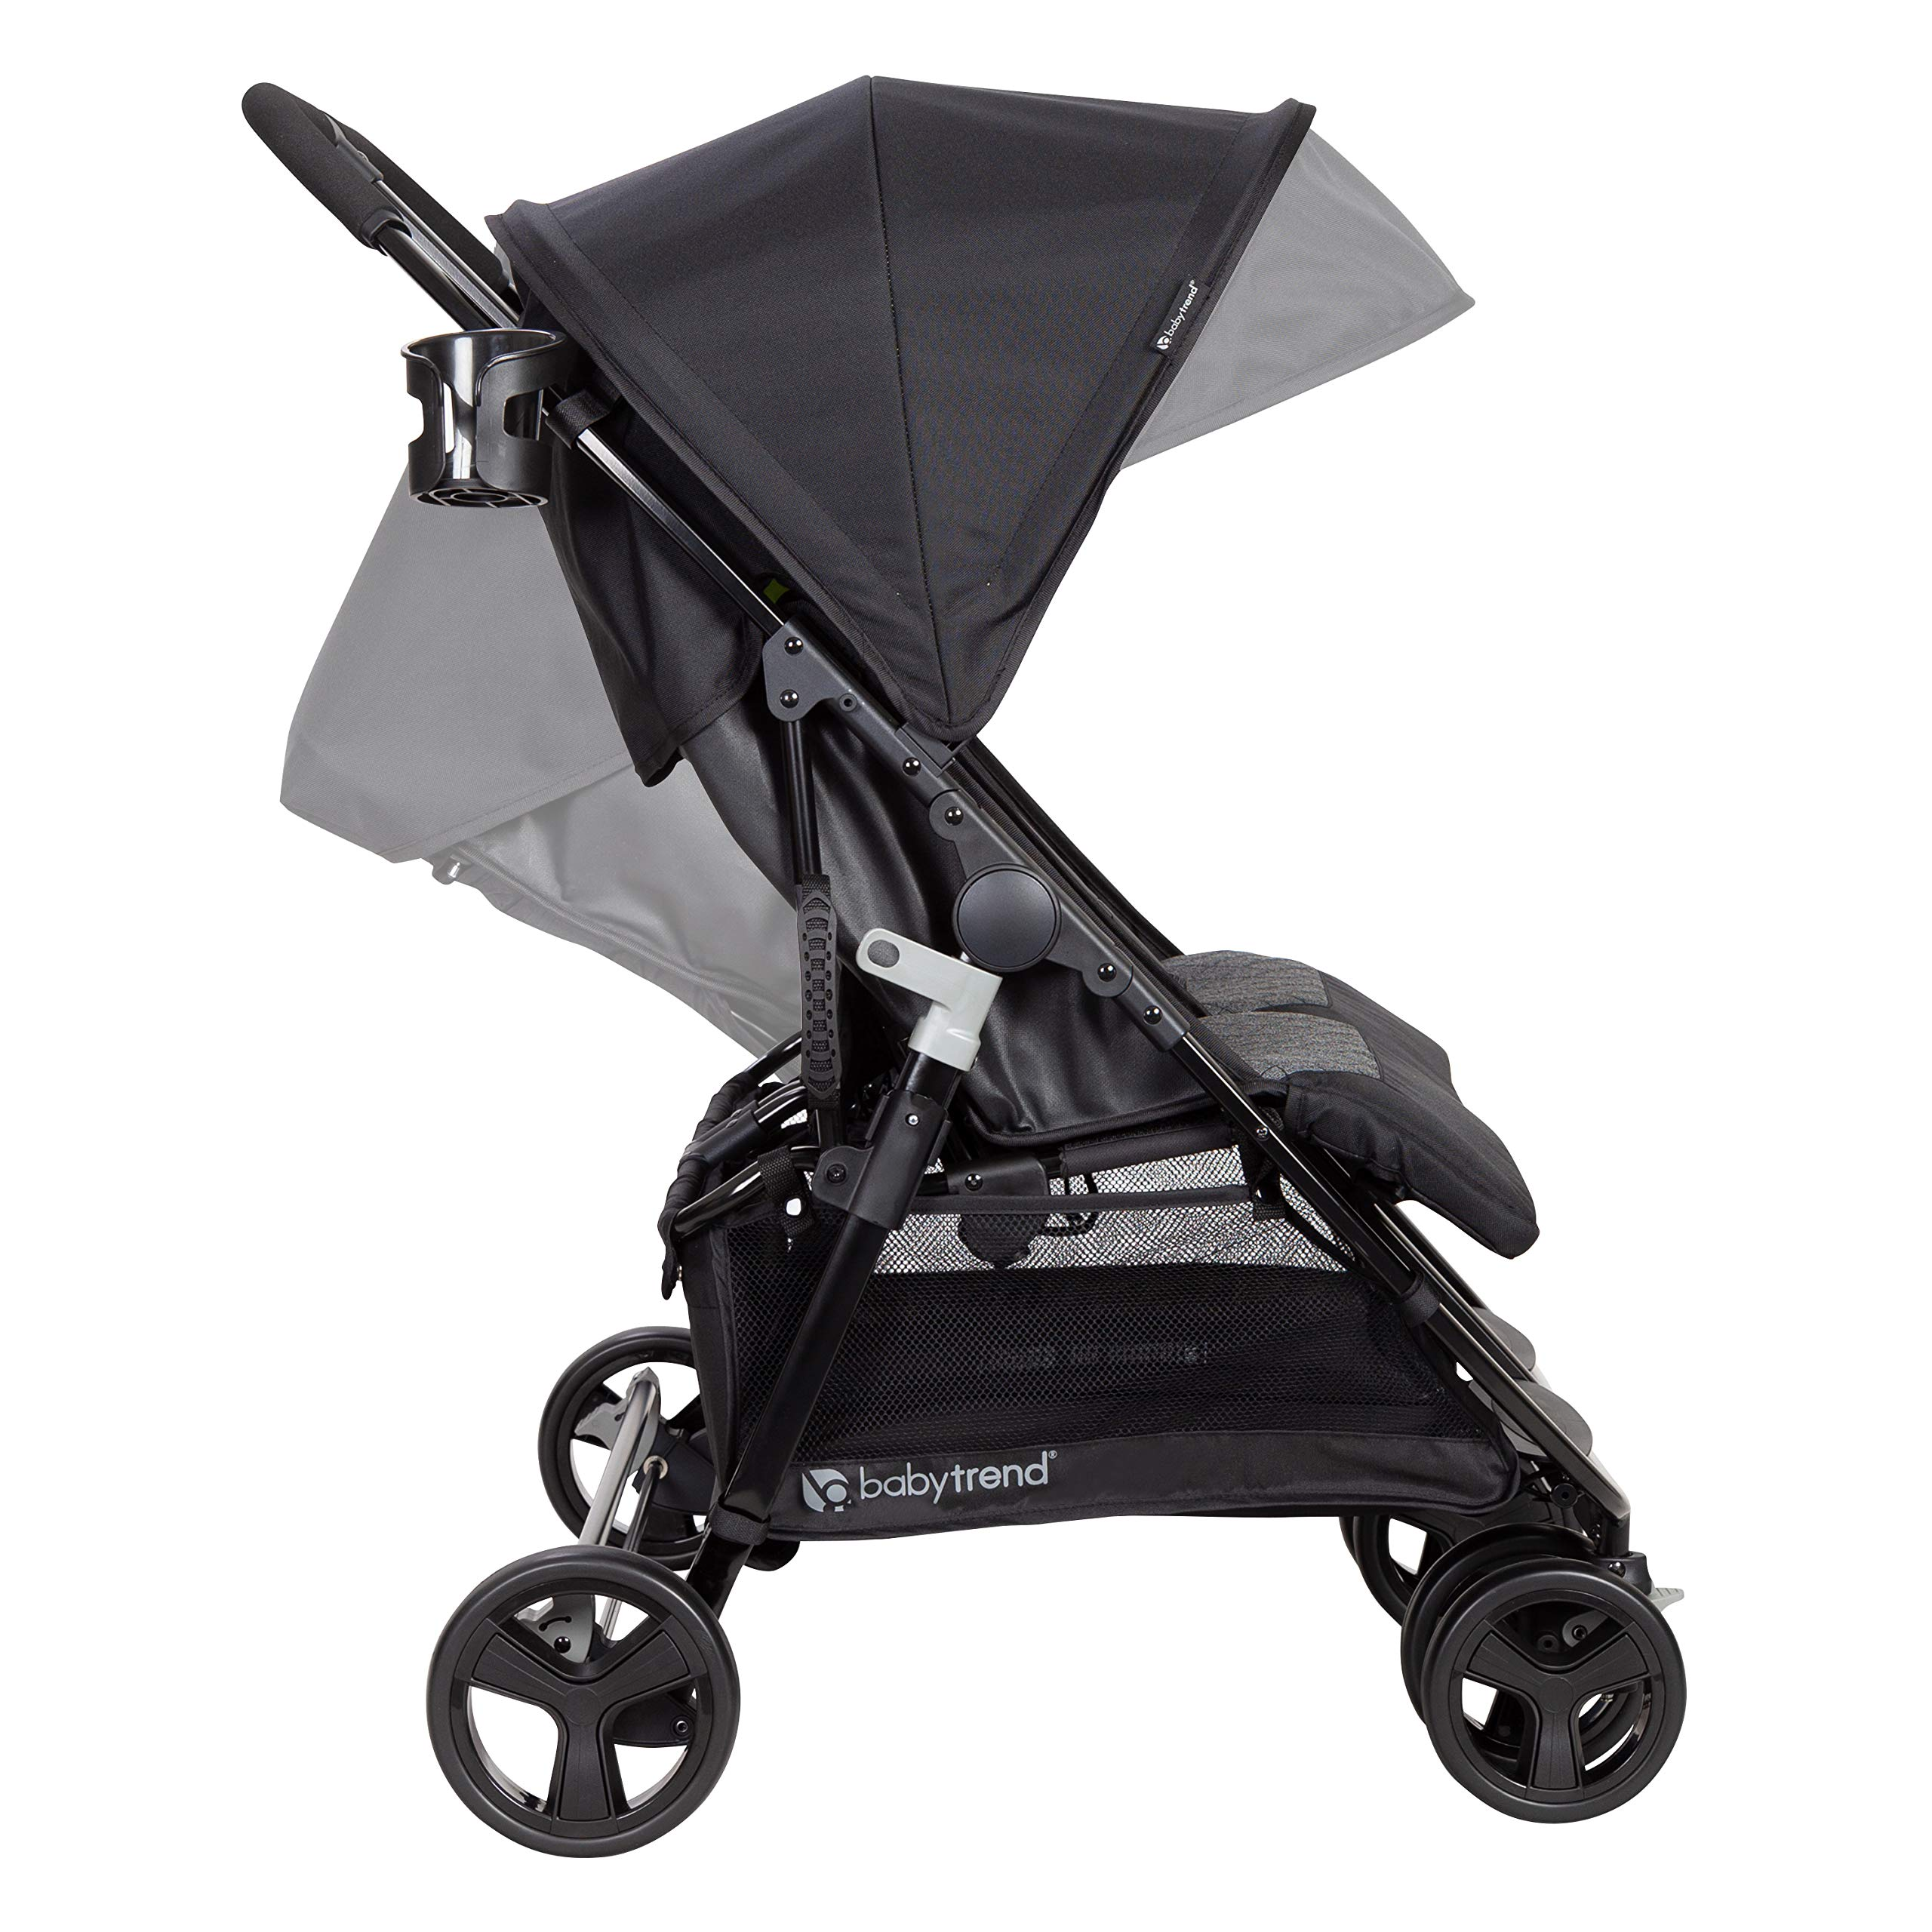 Baby Trend Lightweight Double Stroller, Super Sonic by Baby Trend (Image #2)